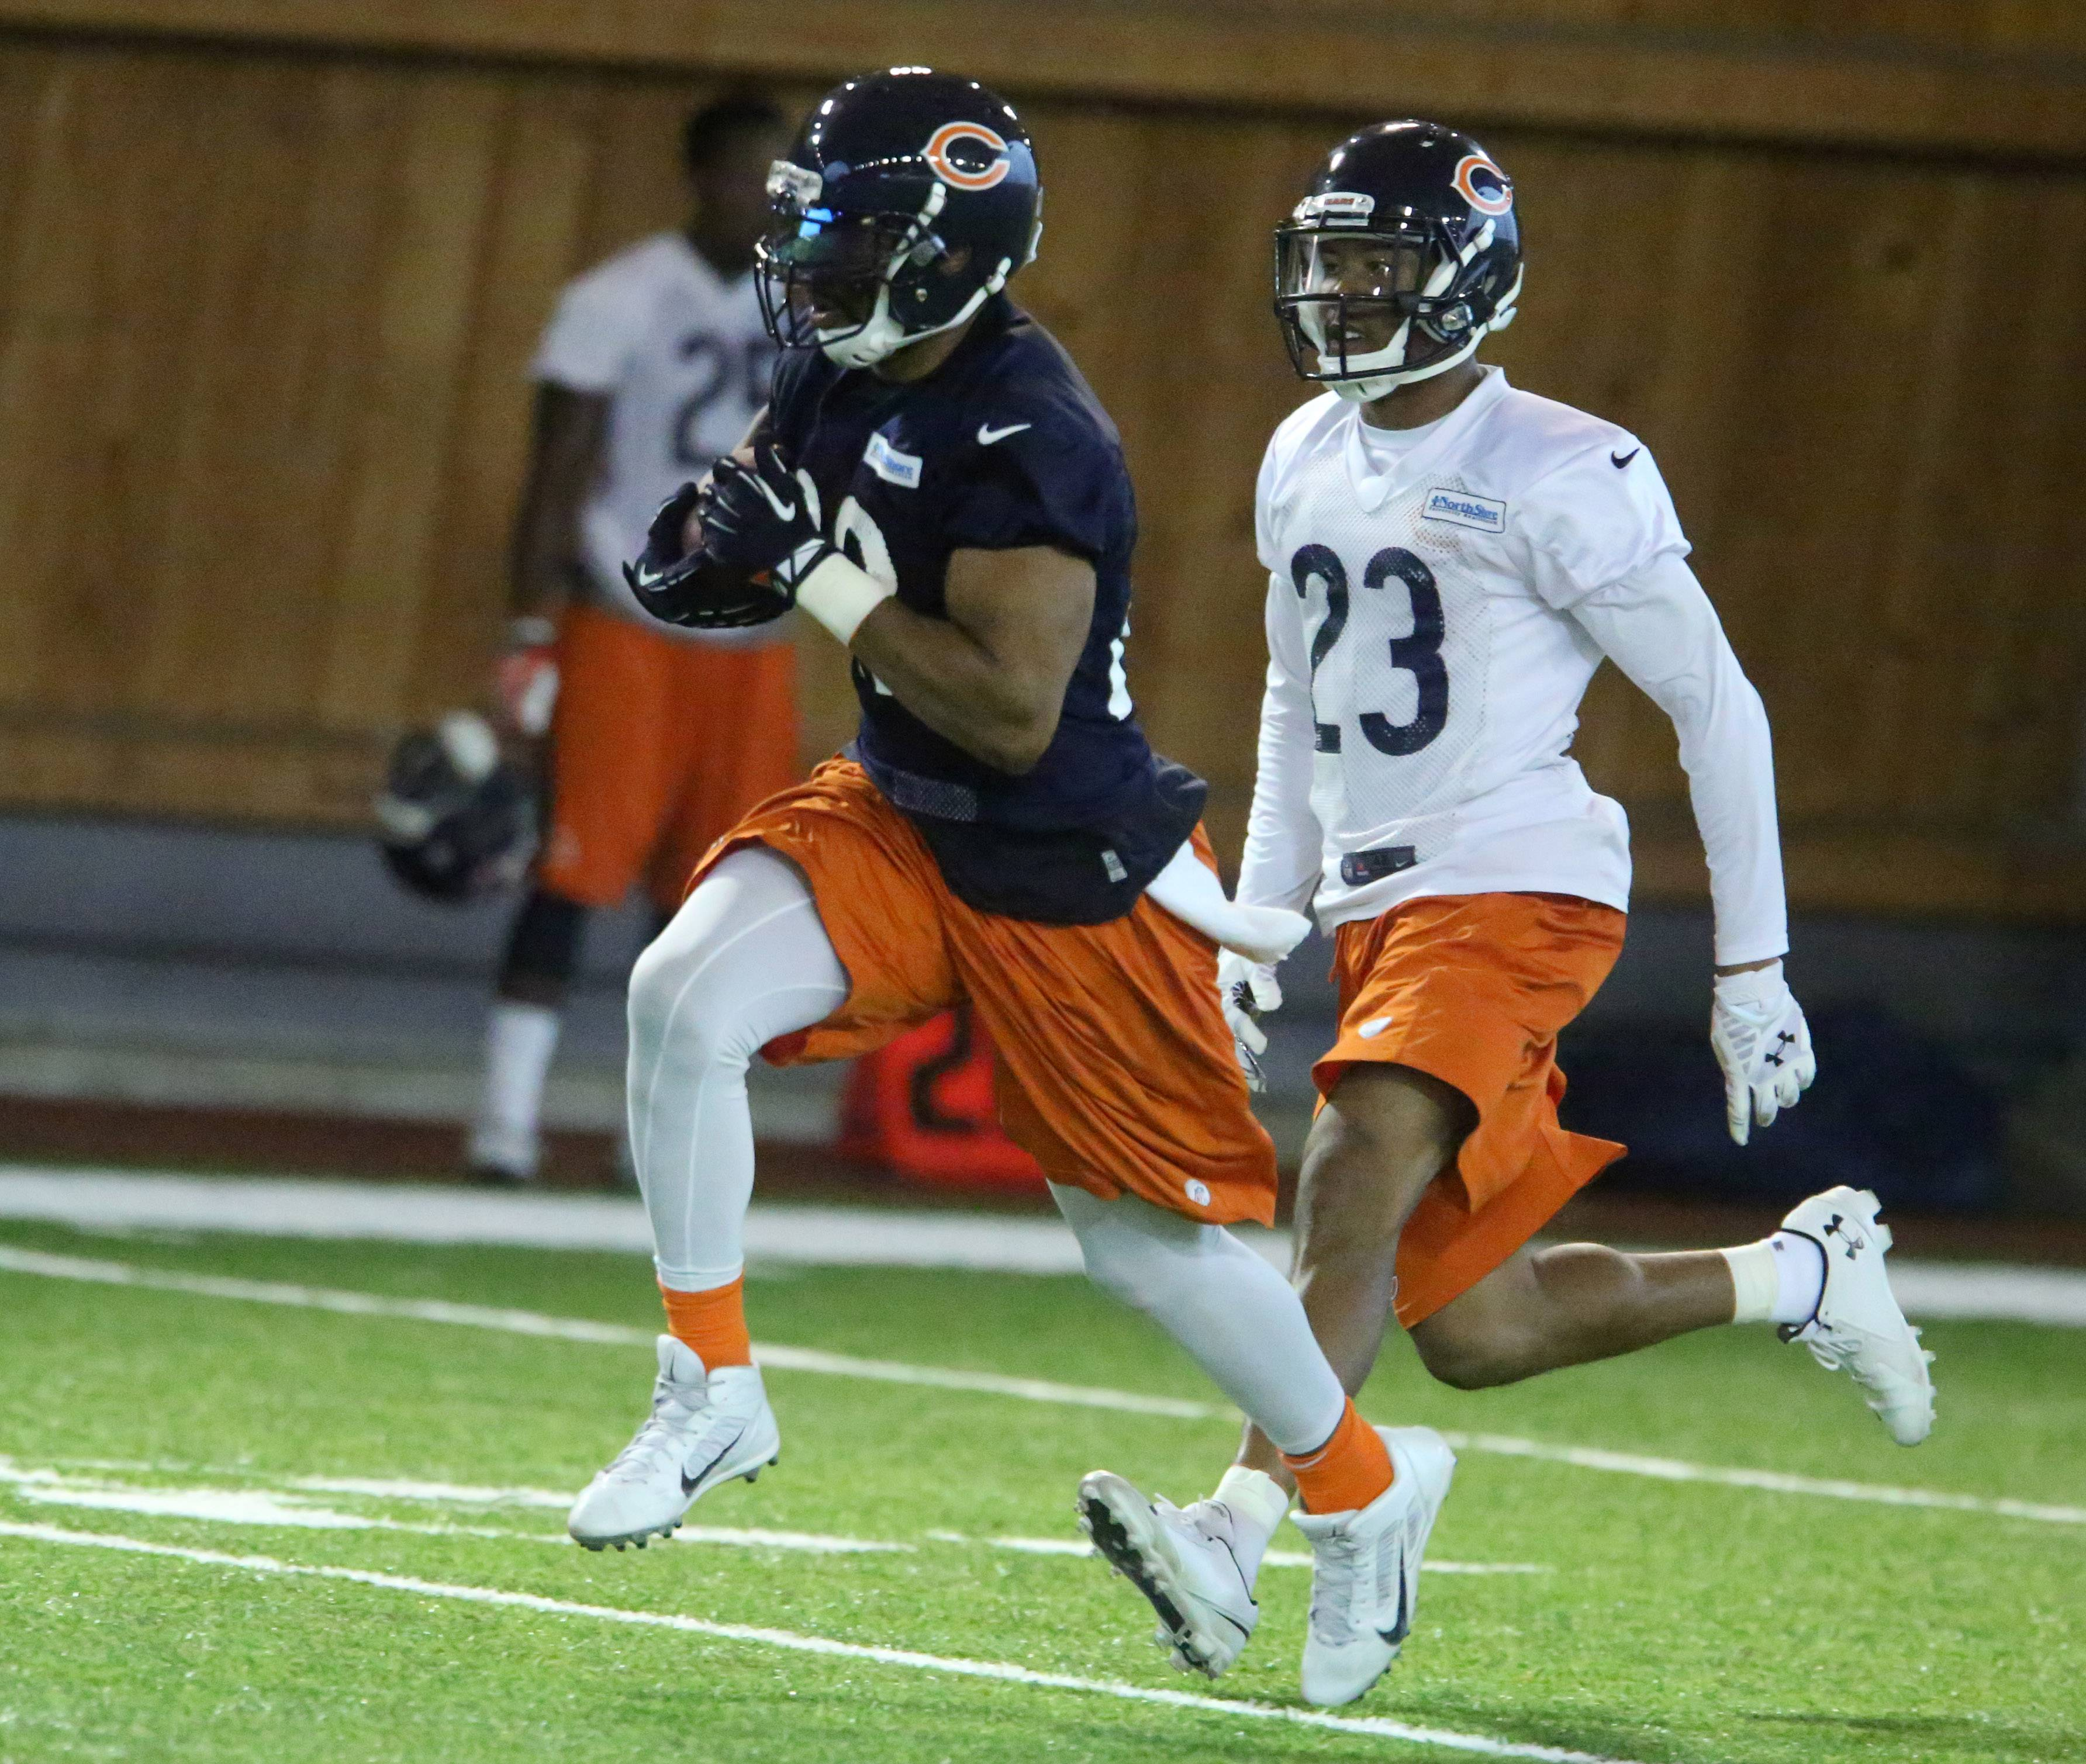 Rookie cornerback Kyle Fuller, here chasing down running back Matt Forte during minicamp in June, has been getting valuable time with the first team as starter Tim Jennings recovers from a quad injury.